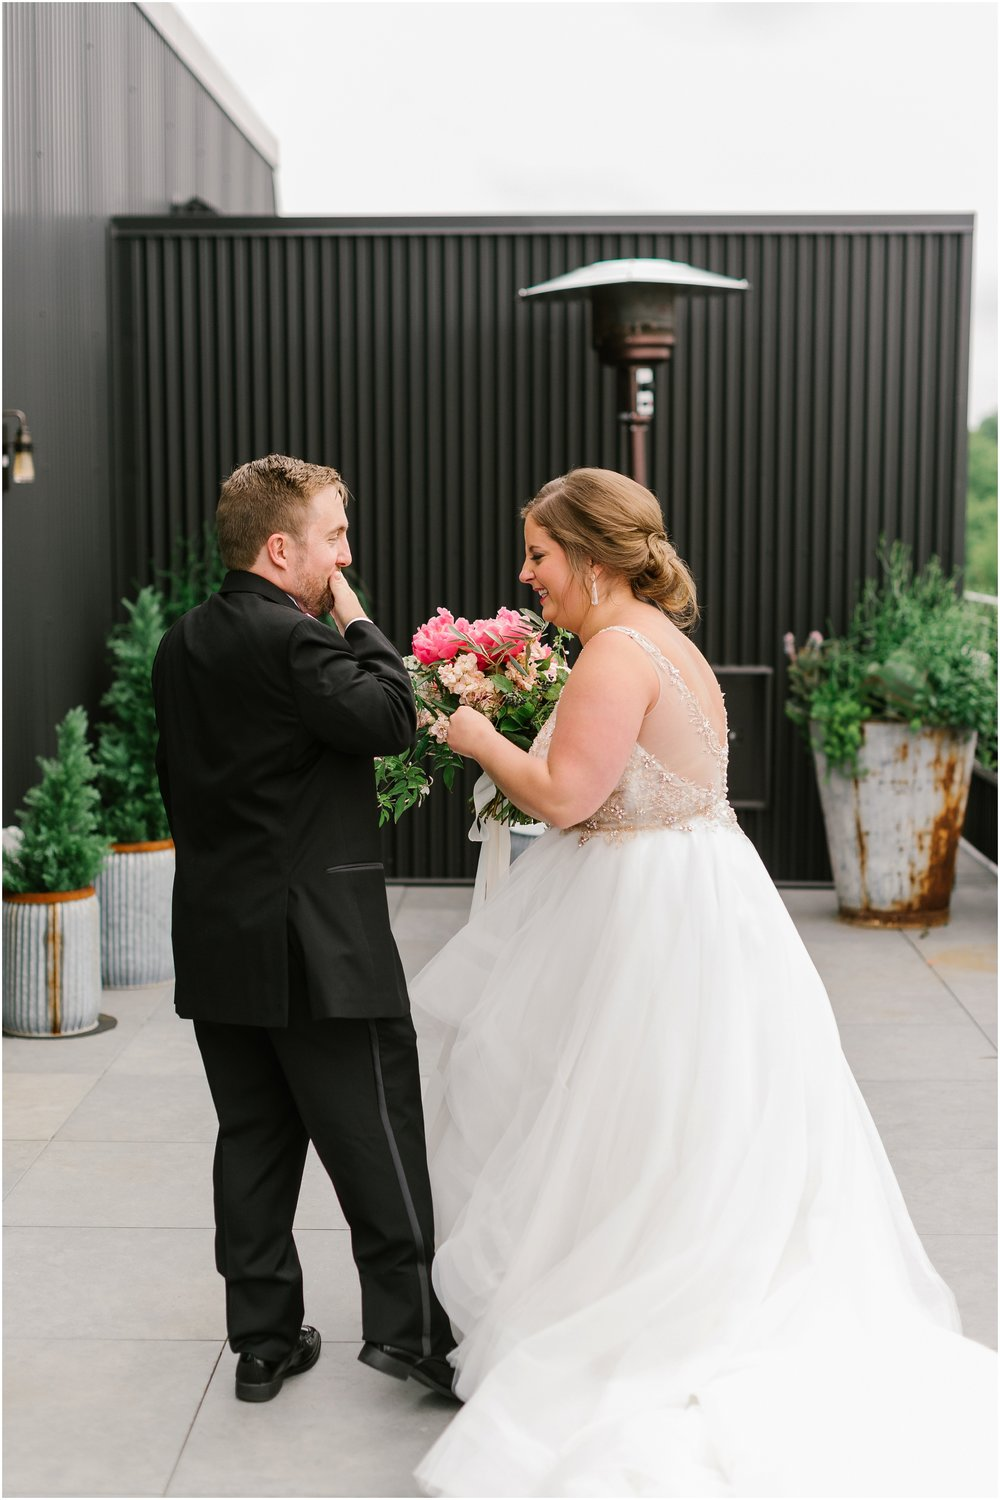 Rebecca_Shehorn_Photography_Indianapolis_Wedding_Photographer_8801.jpg